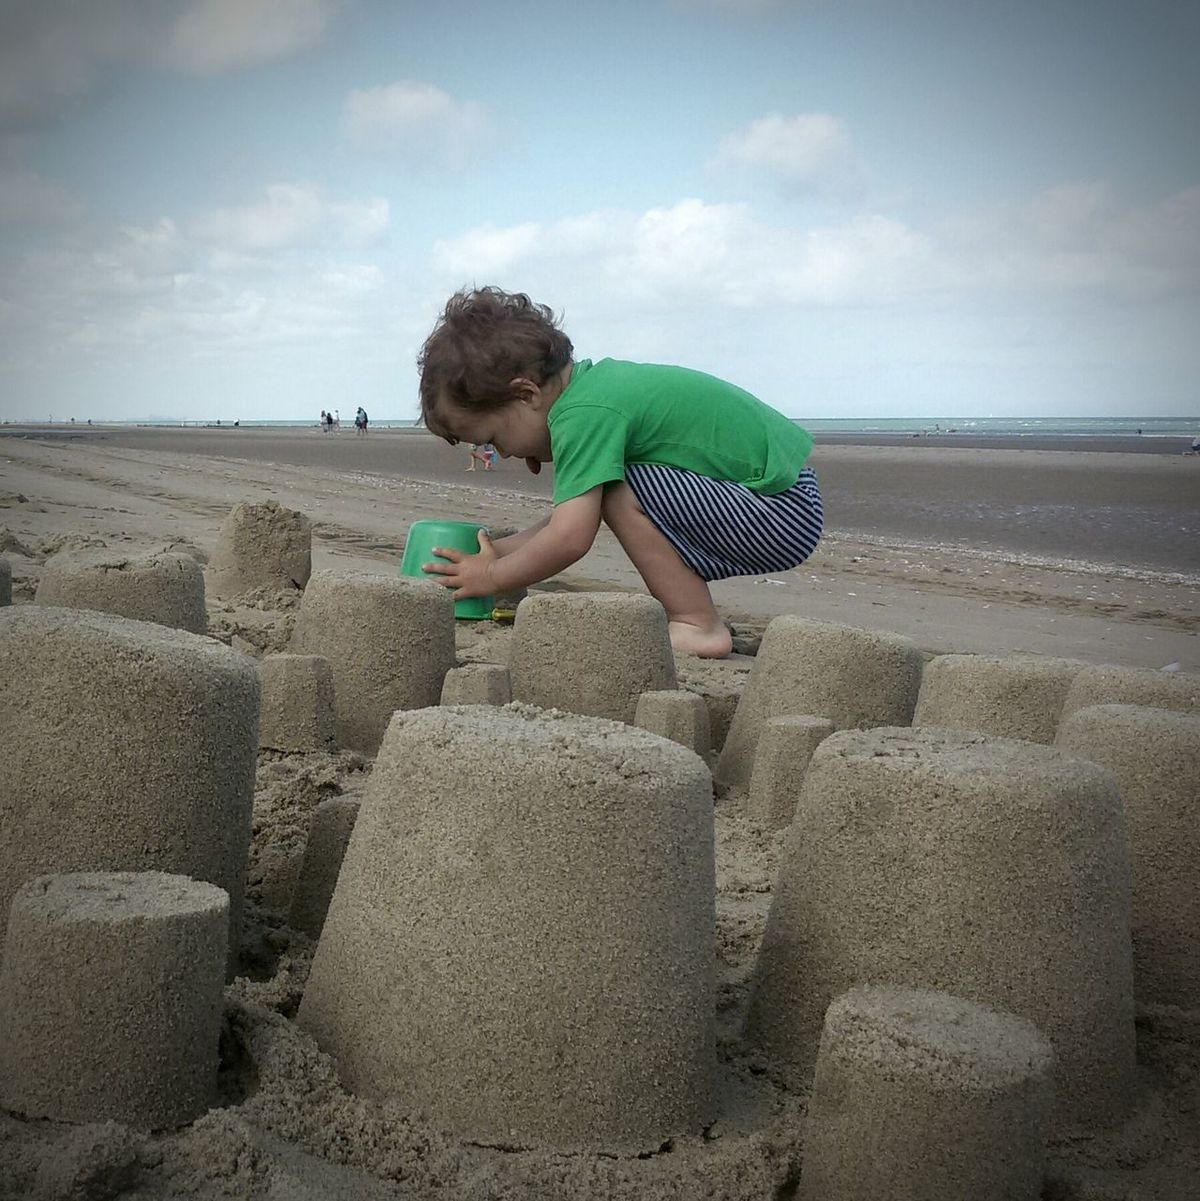 Beach Building Castles In The Sand Kids Photography Kids Playing At The Beach Summertime Summer Holidays My Boy People